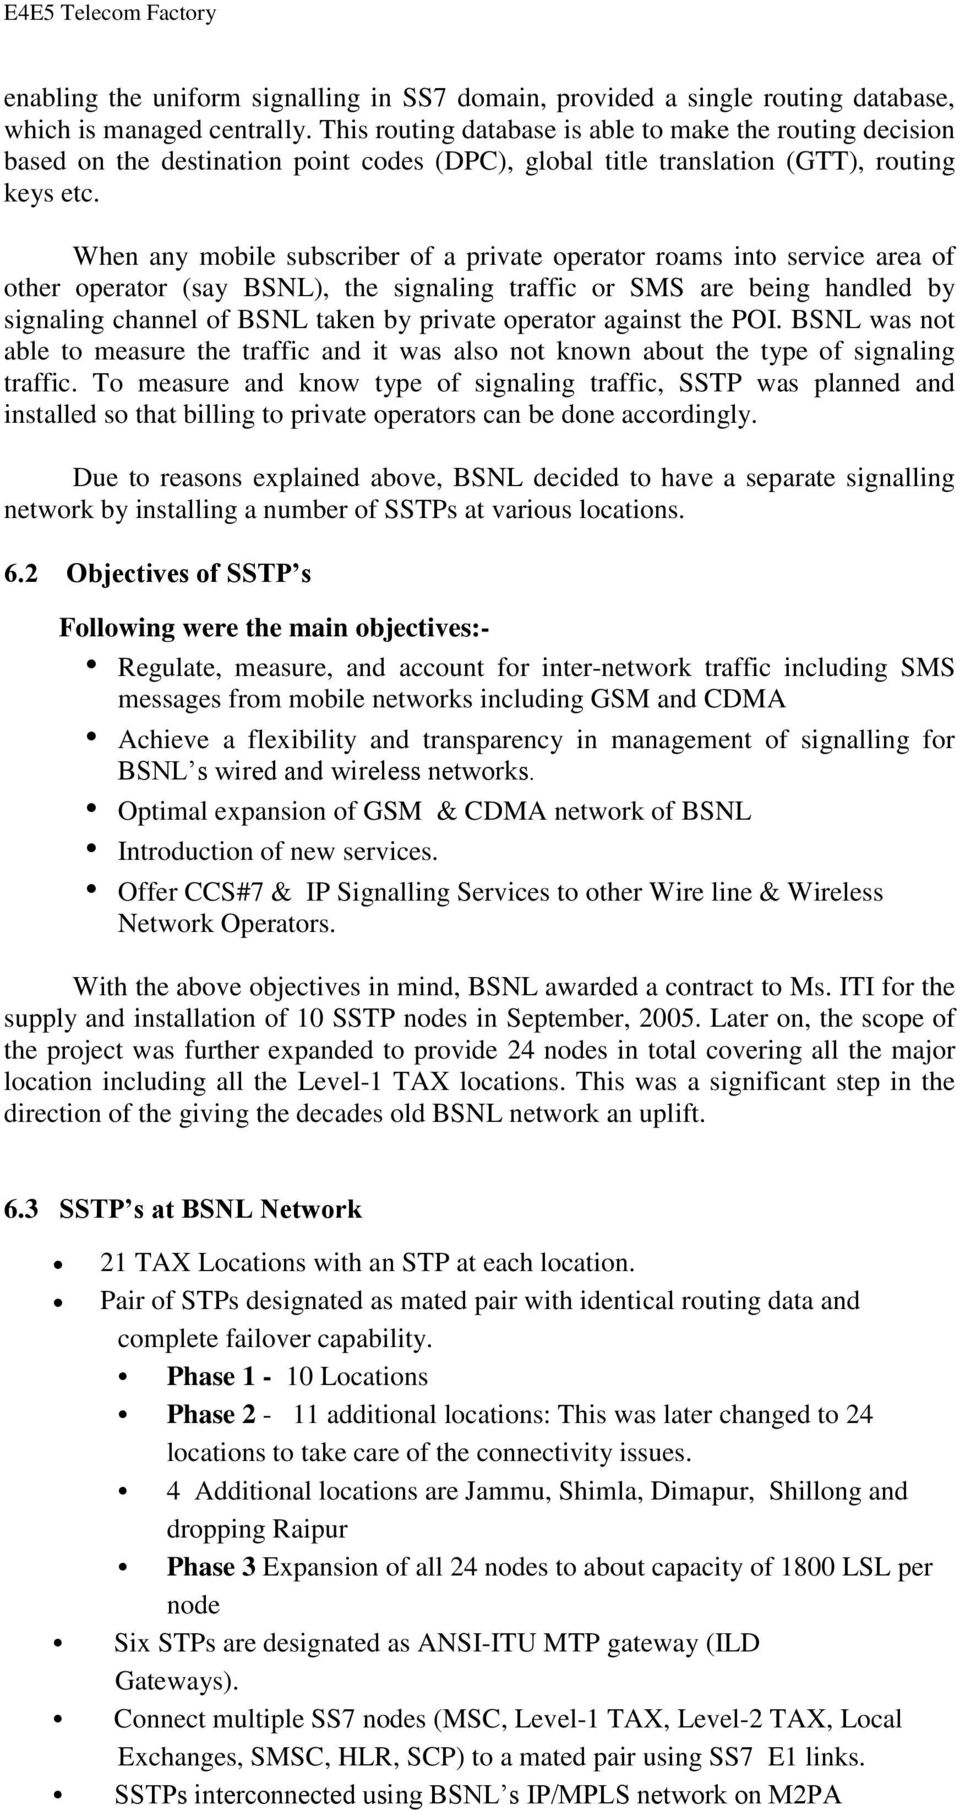 When any mobile subscriber of a private operator roams into service area of other operator (say BSNL), the signaling traffic or SMS are being handled by signaling channel of BSNL taken by private